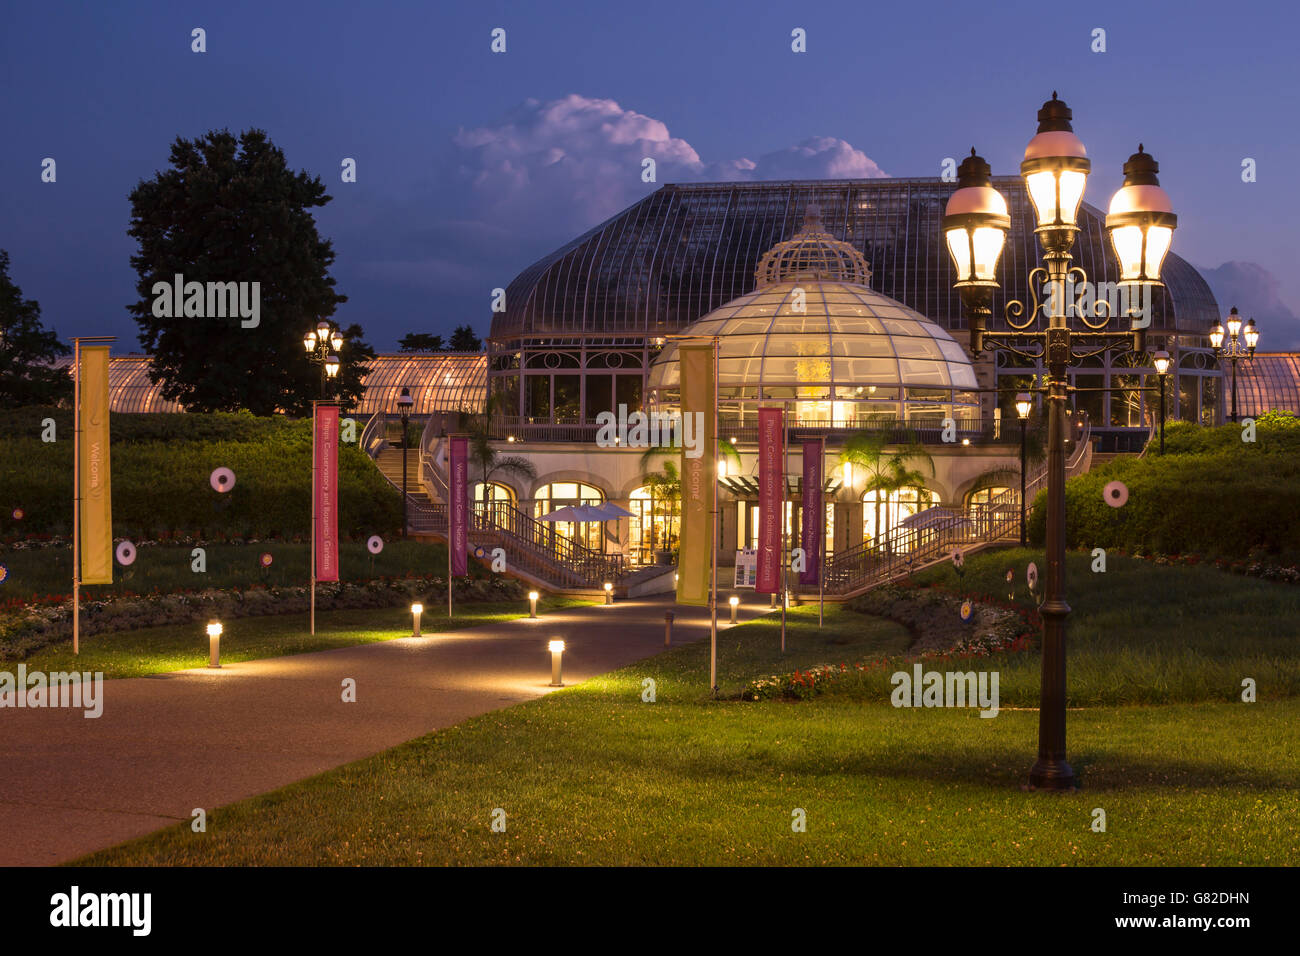 WELCOME CENTER PALM COURT BUILDING PHIPPS CONSERVATORY (©LORD Stock ...